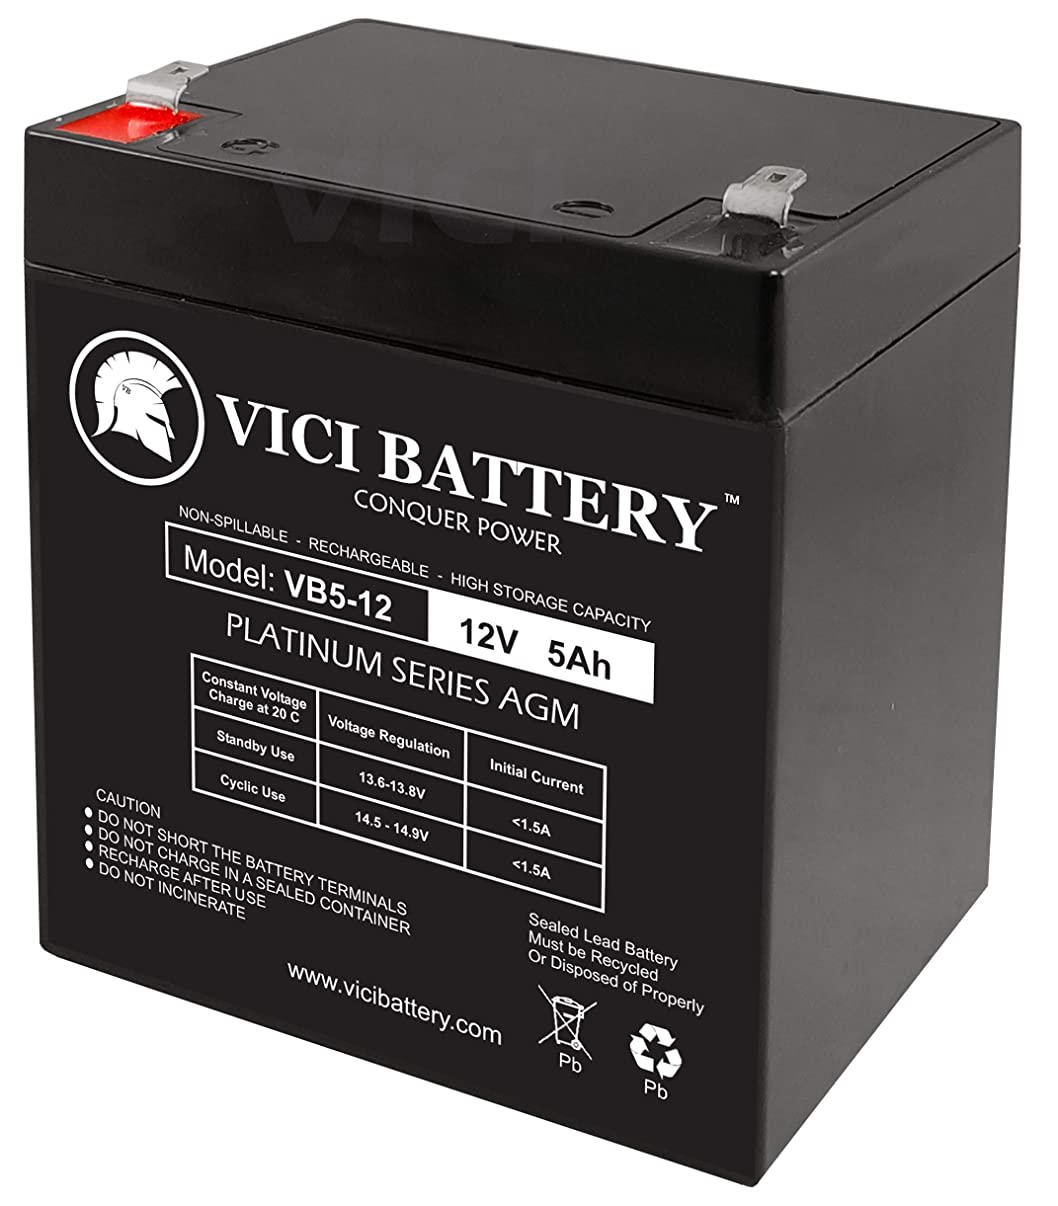 VICI Battery 12V 5AH SLA Battery Replacement for EB1250F2, ELB 1250A Brand Product